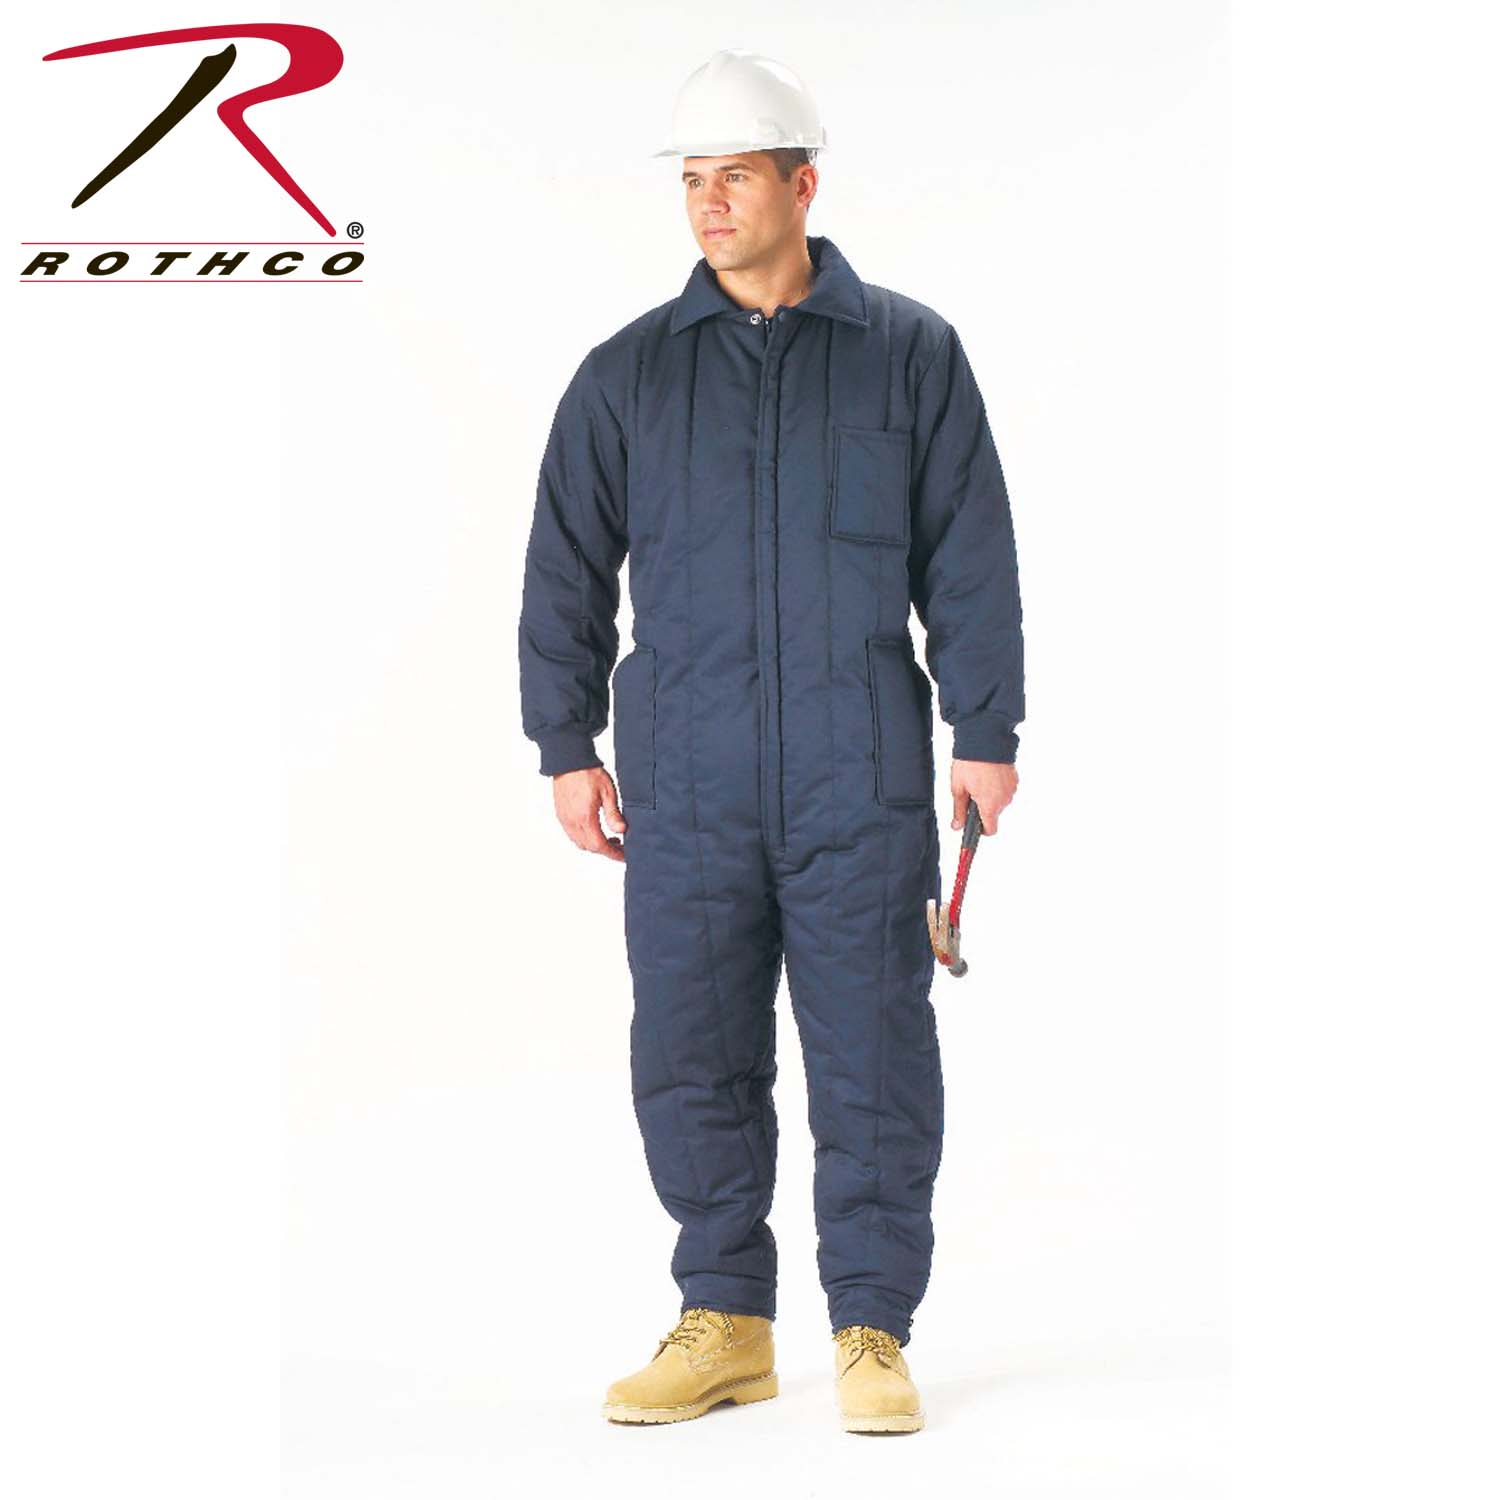 Rothco Insulated Coveralls by BlackBeltShop